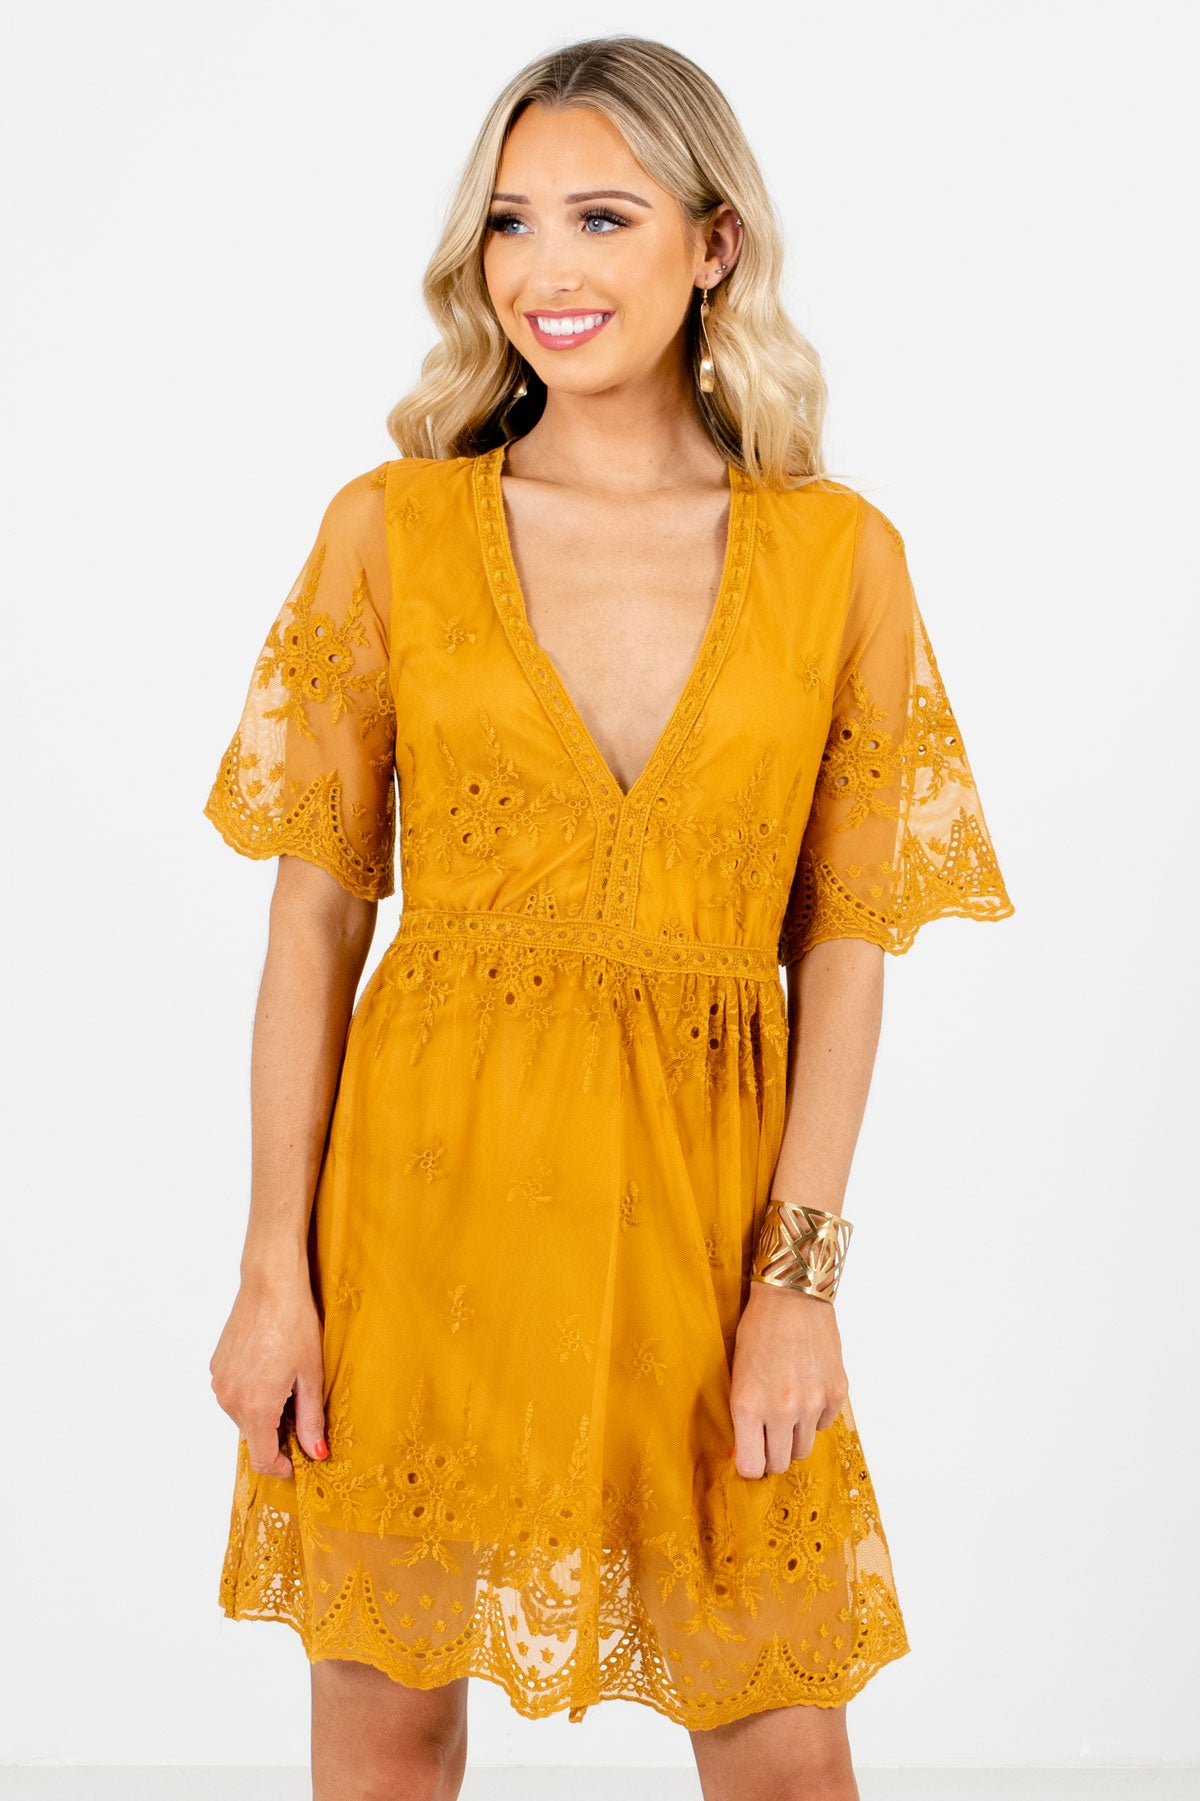 Mustard Yellow Cute Floral Crochet Lace Overlay Mini Dress